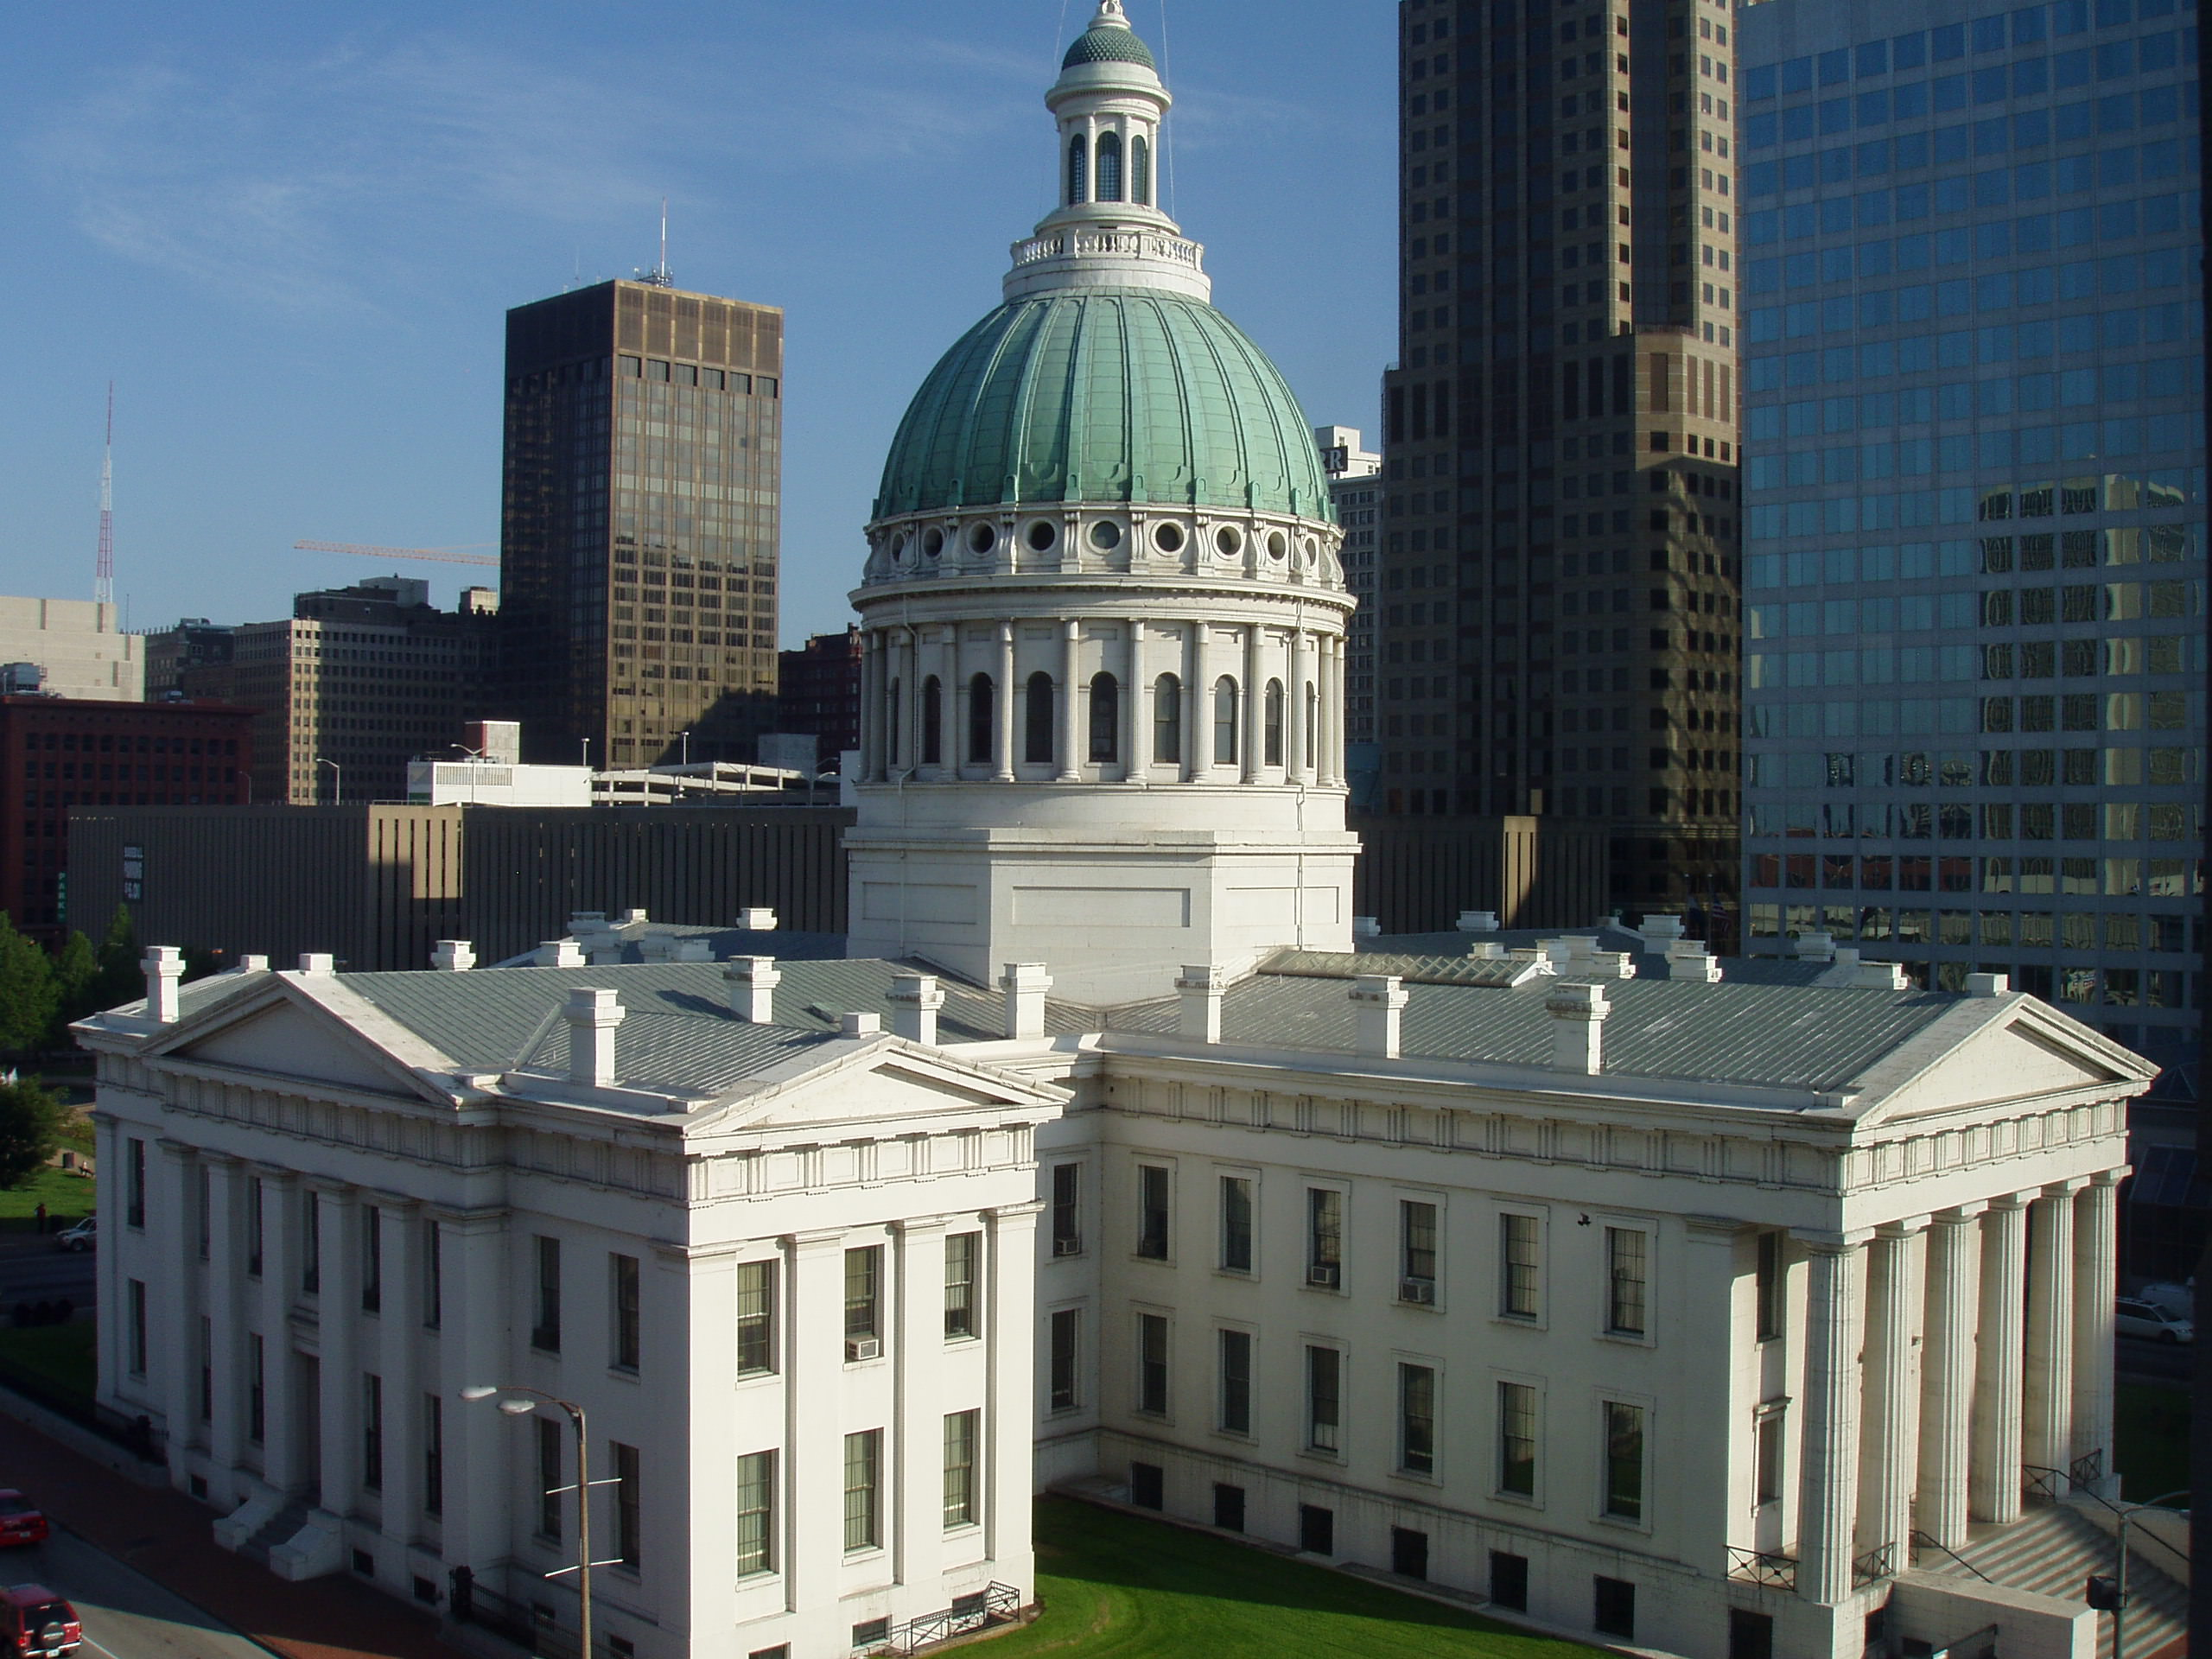 St. Louis County Old Courthouse